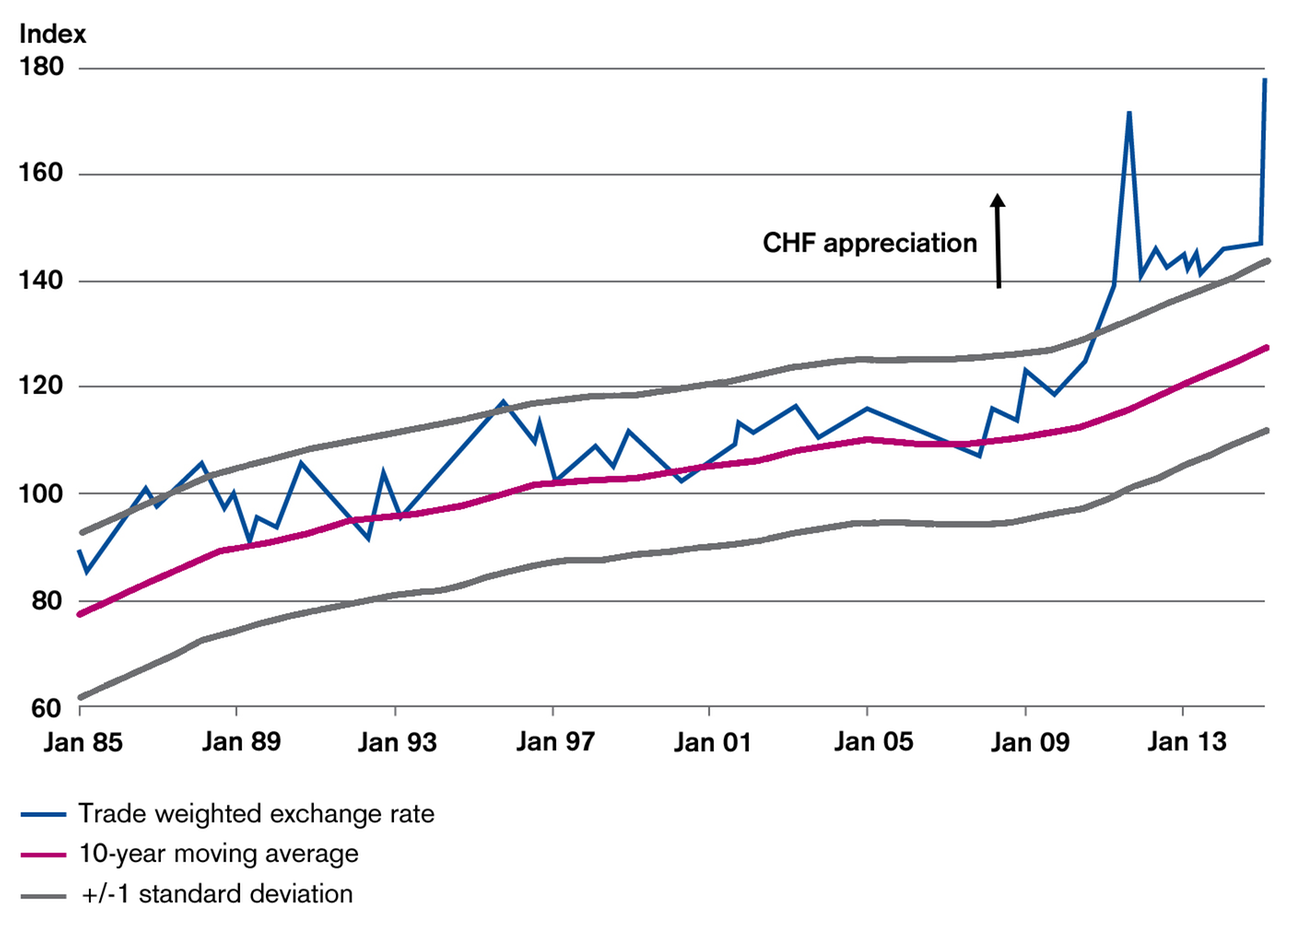 CHF Trade Weighted Exchange Rate